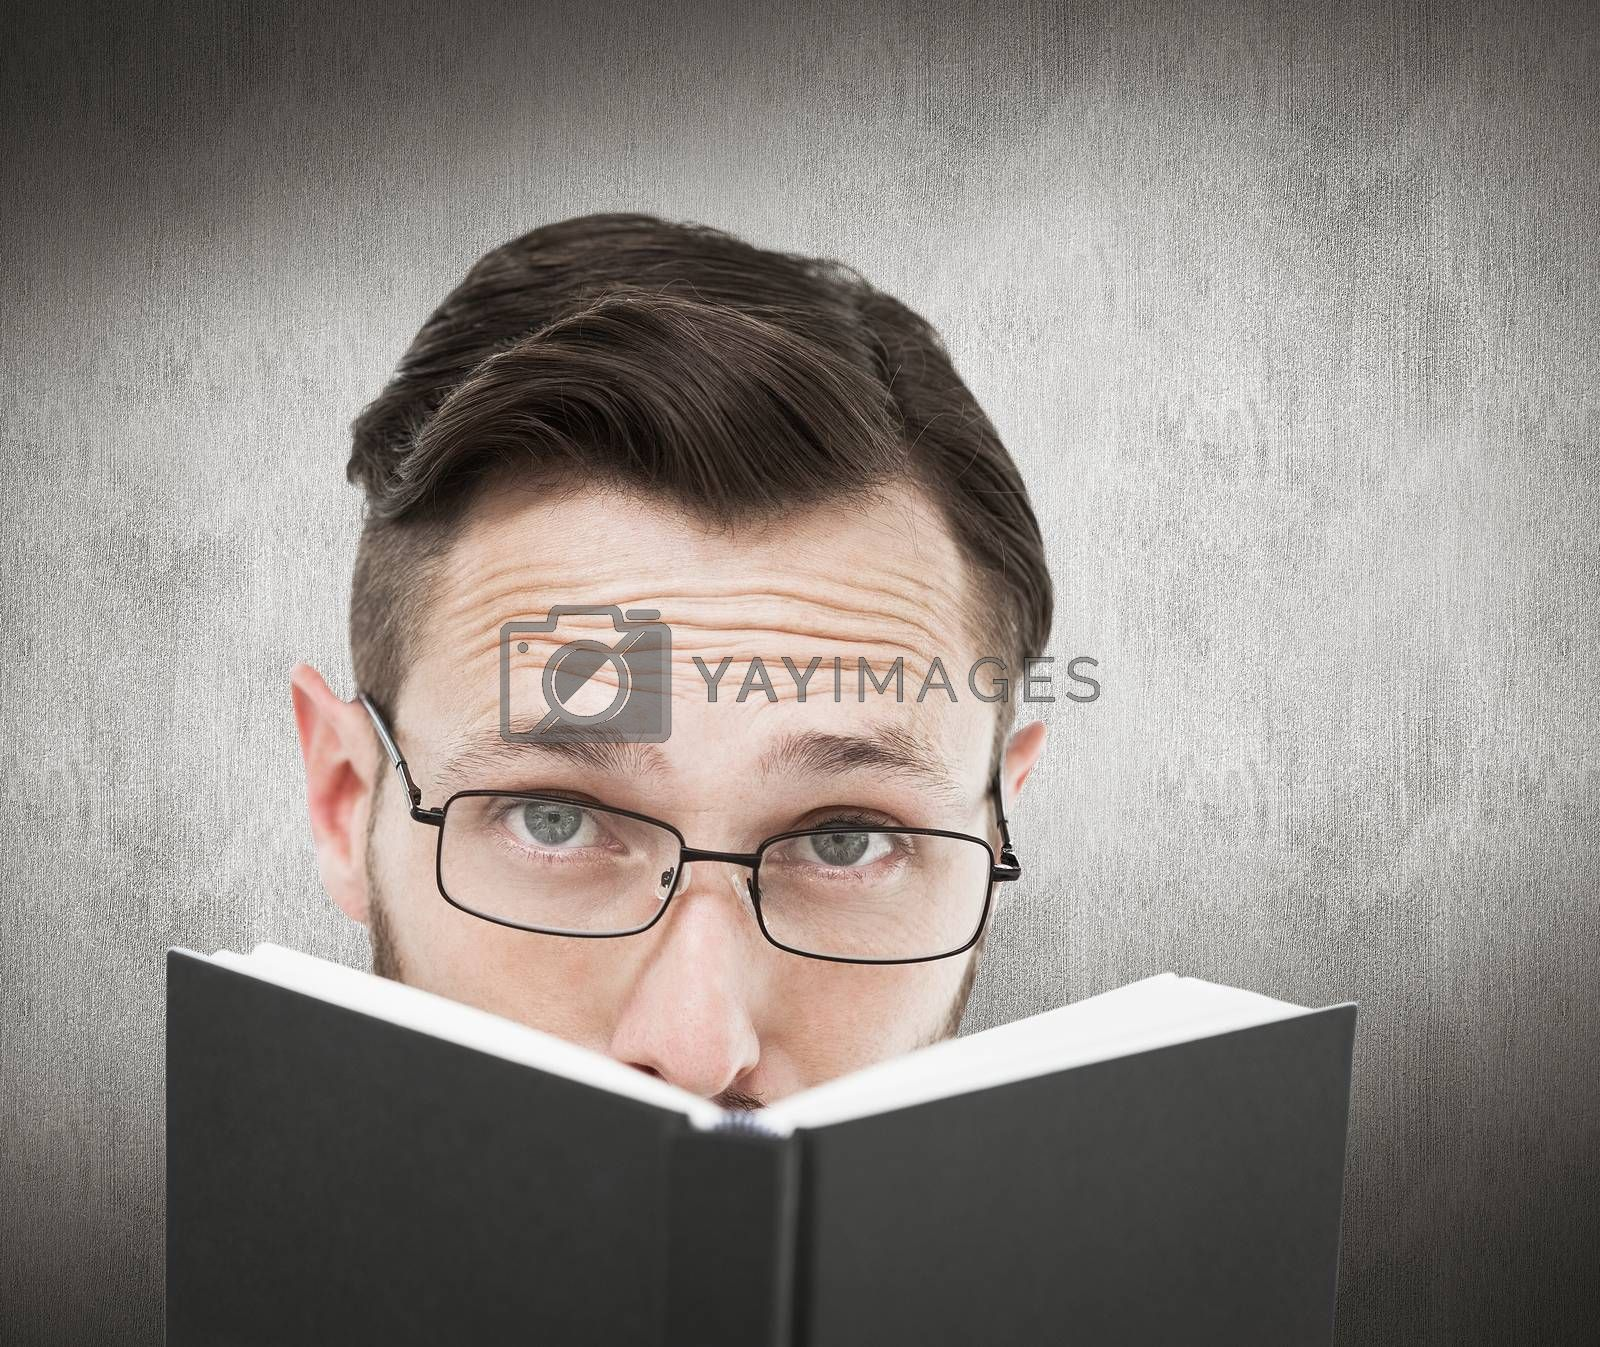 Young geek looking over black book against white and grey background